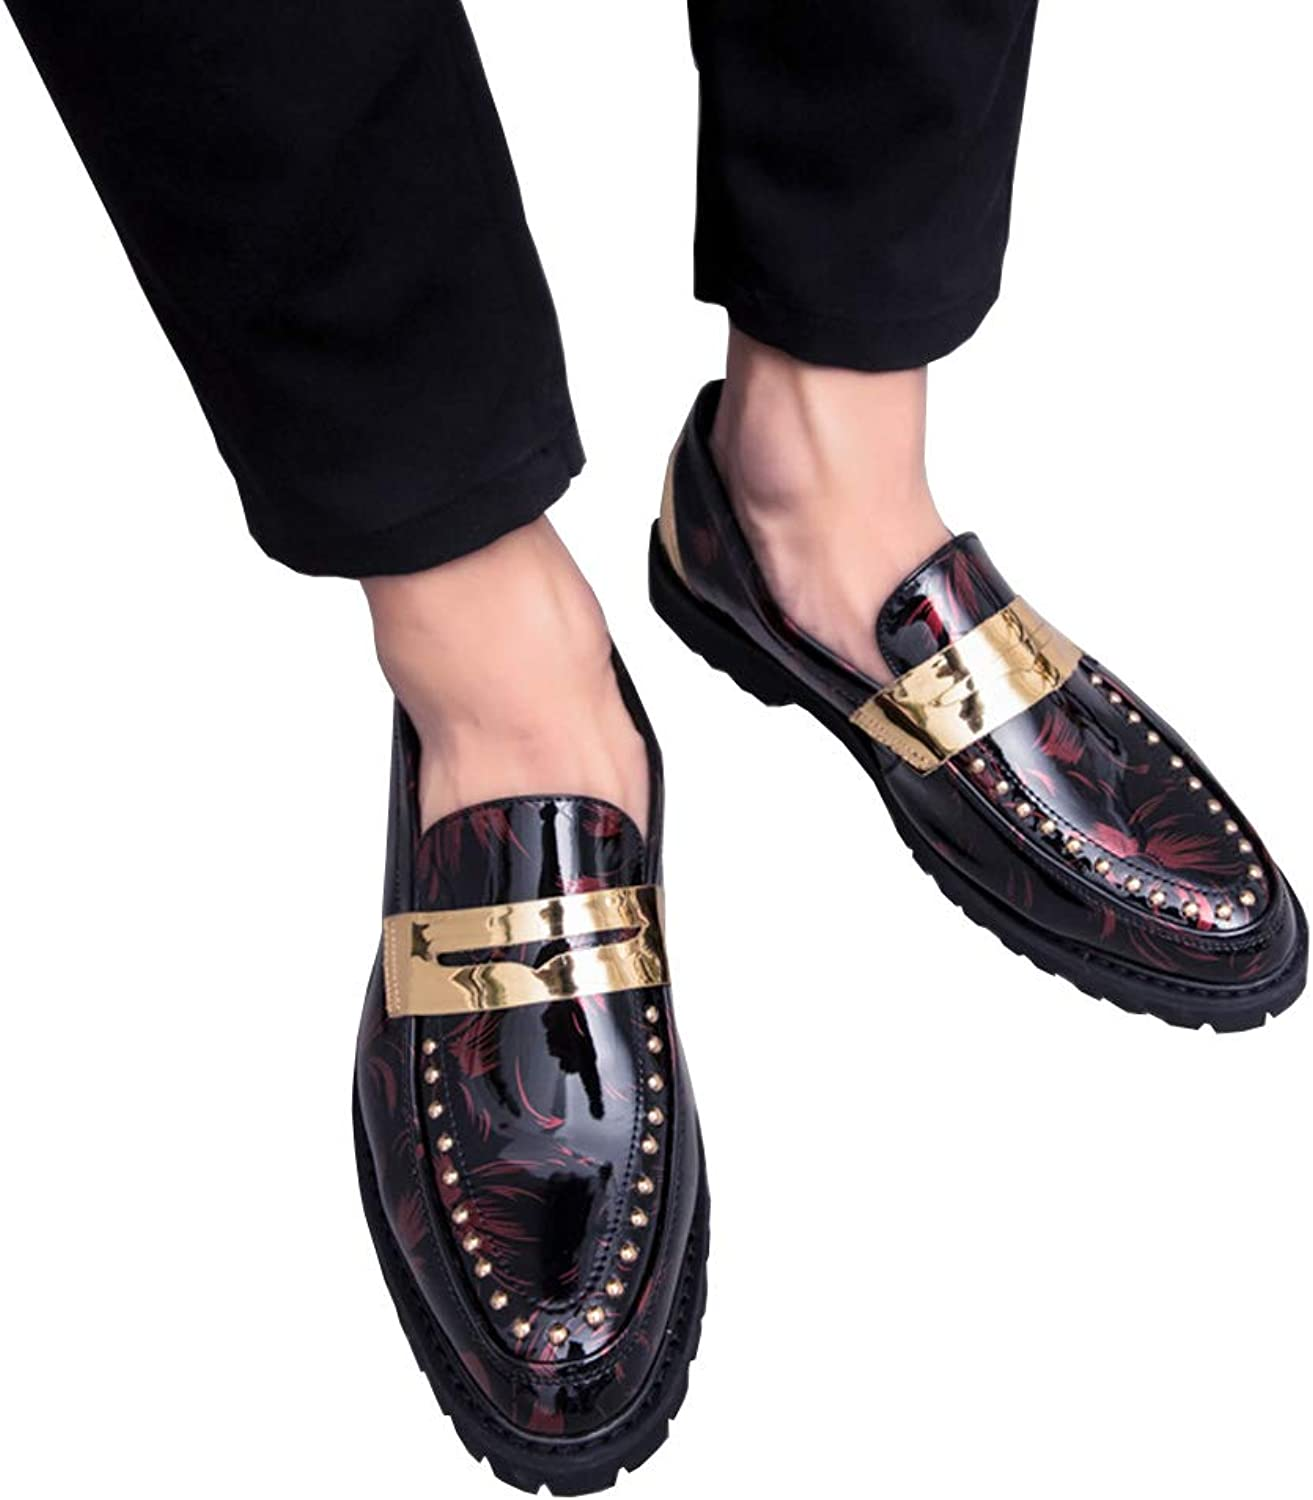 JHHXW Leather shoes low shoes, wedges, shiny, casual shoes, rivets, hotel work, men